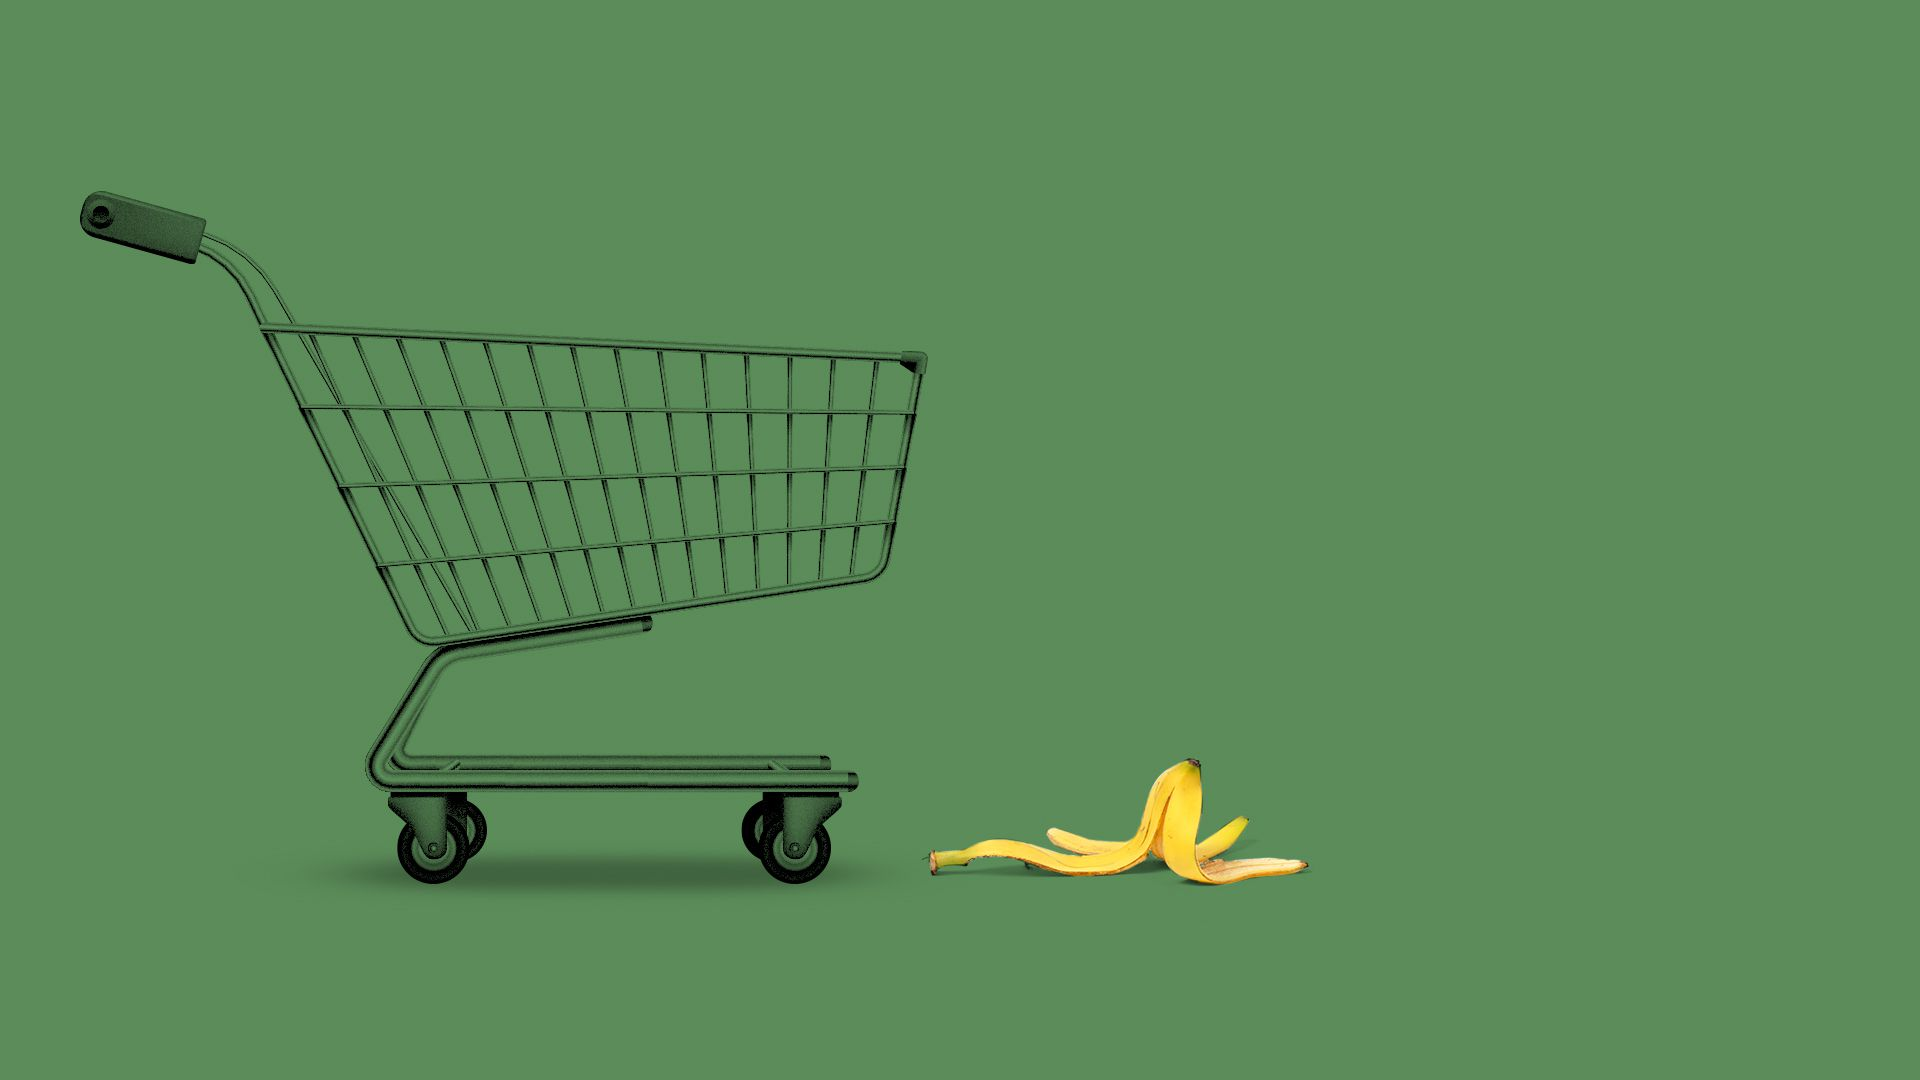 Illustration of  a shopping cart about to slip on a banana peel